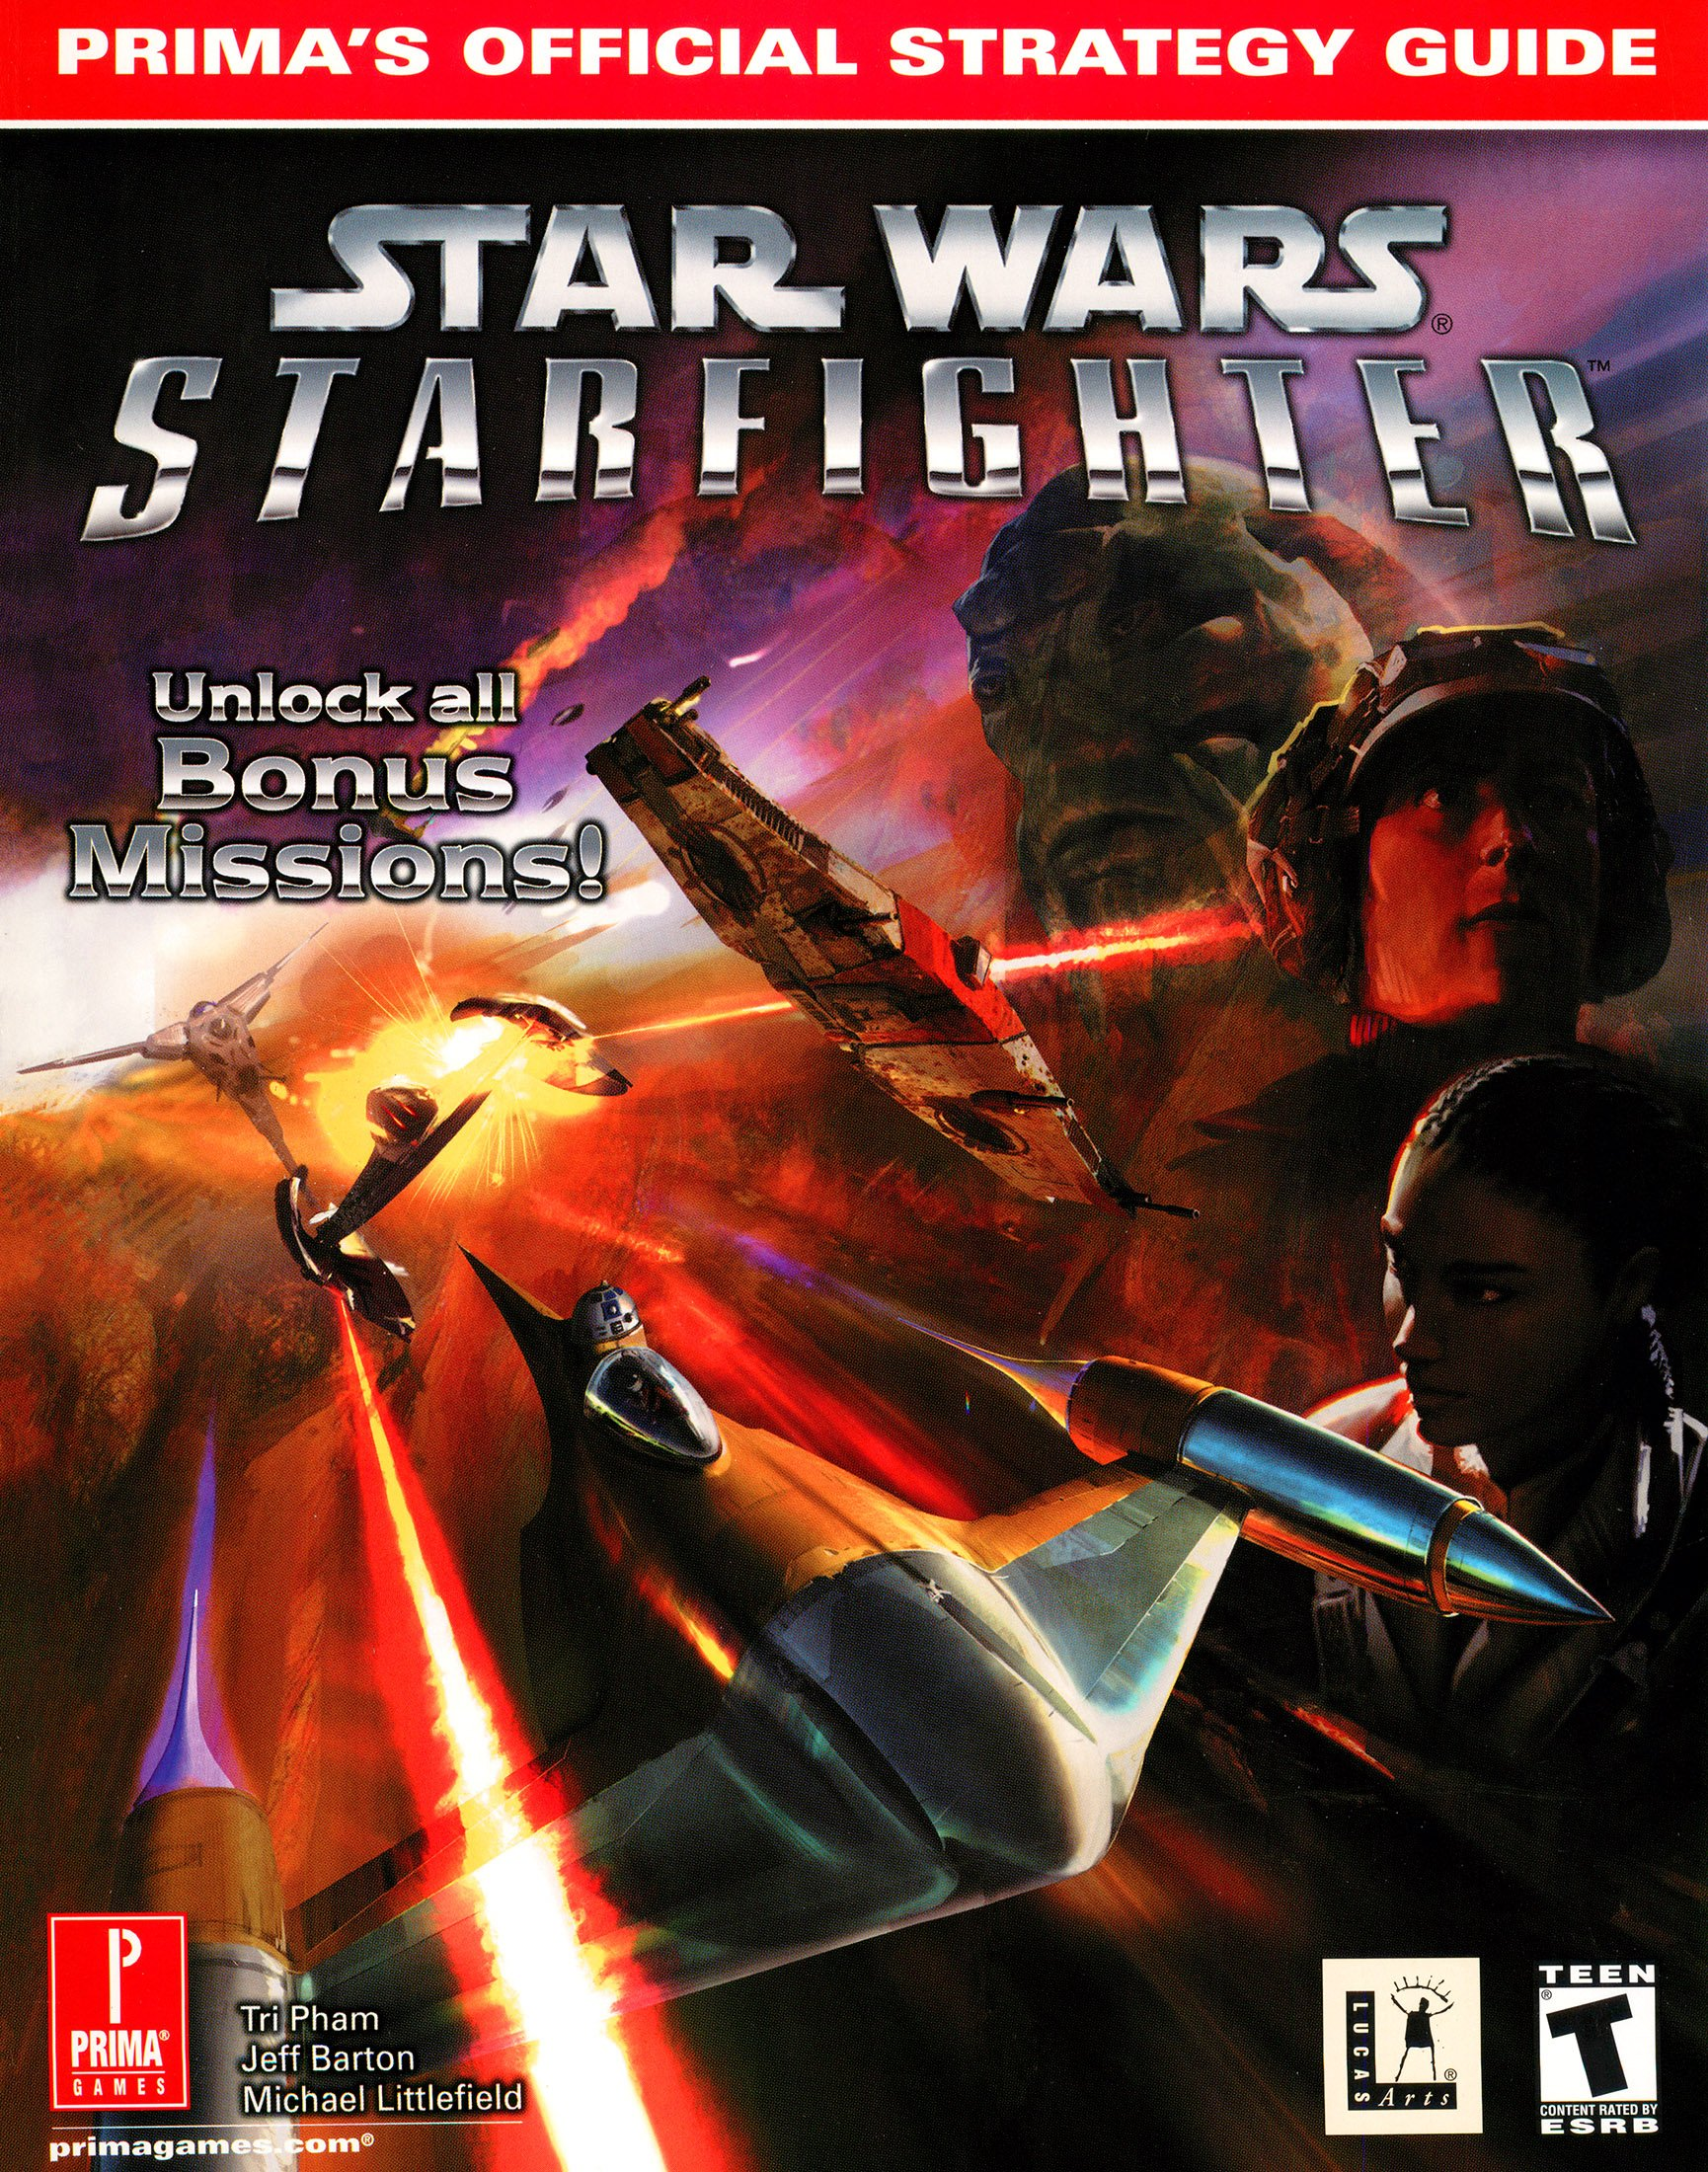 Star Wars Star Fighter - Prima's Official Strategy Guide